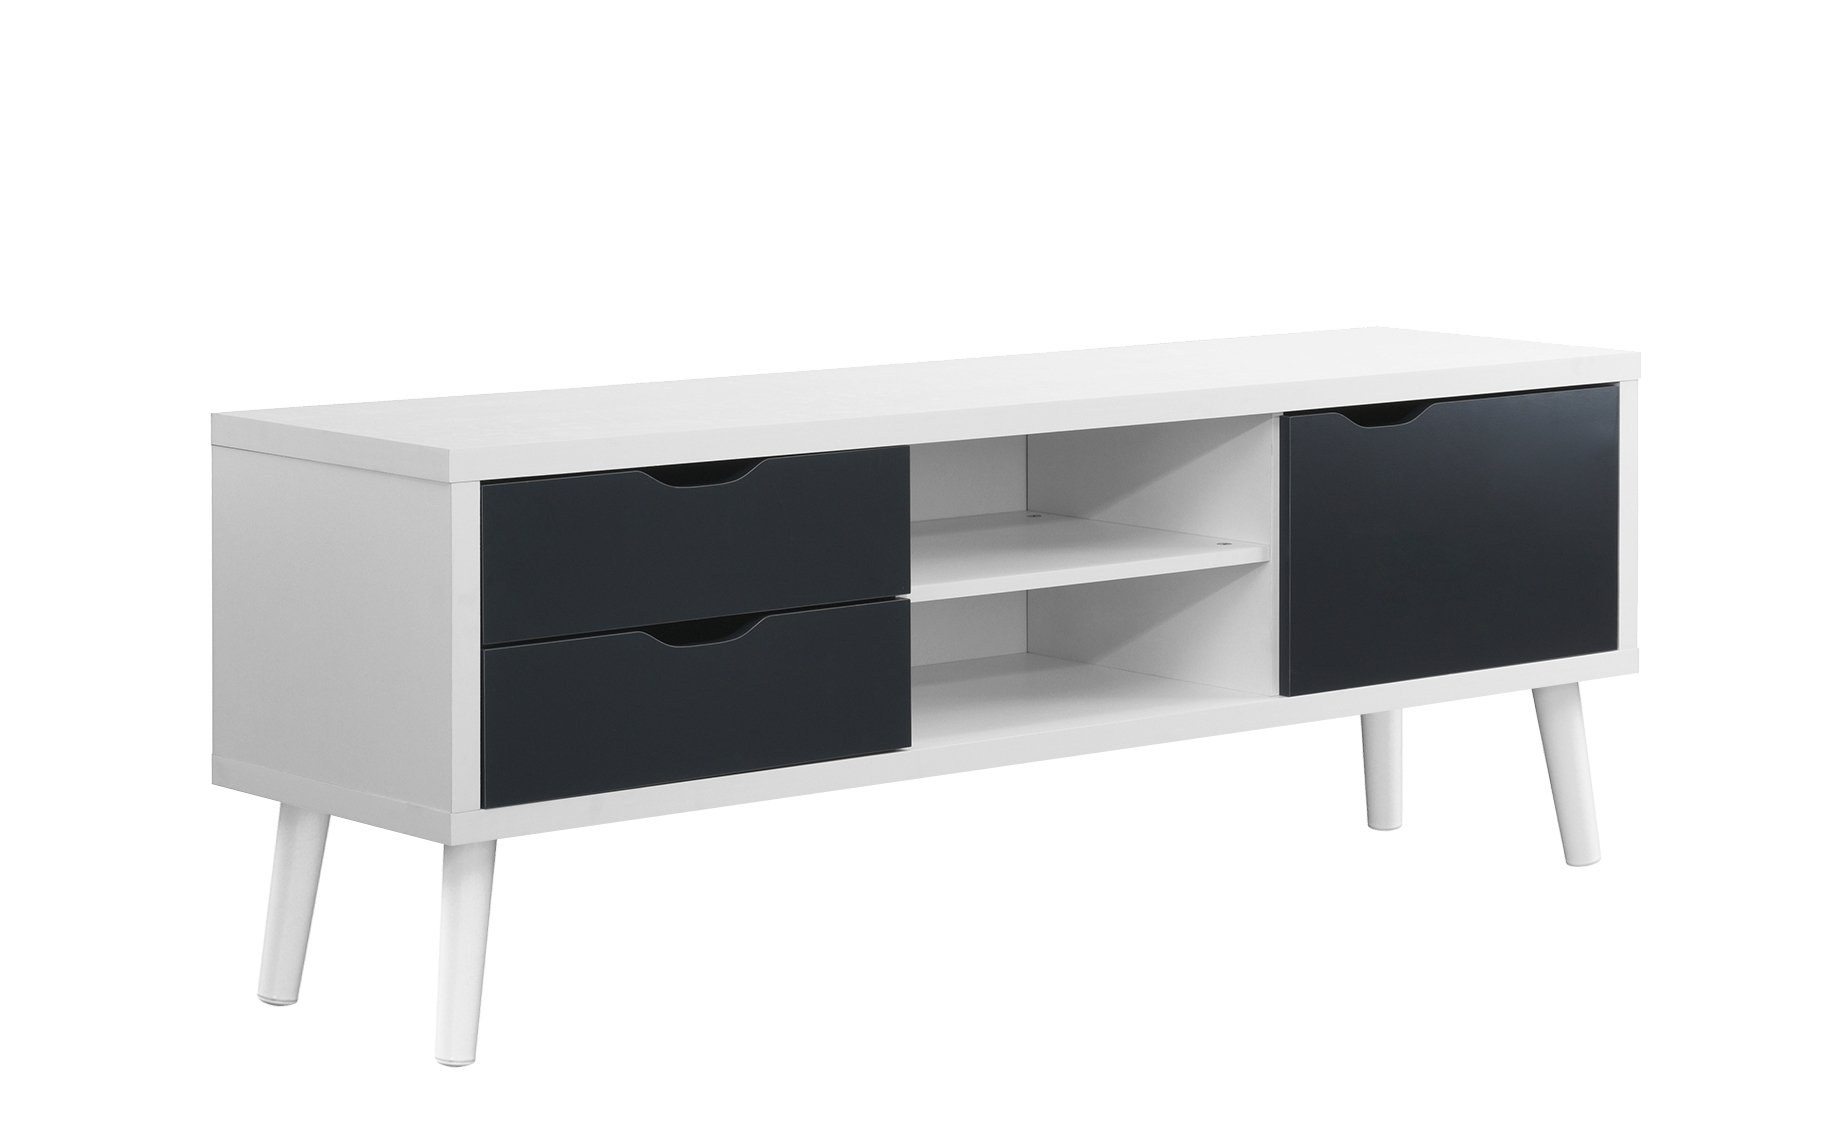 Sofamania Mid Century Style Tv Stand Living Room Entertainment